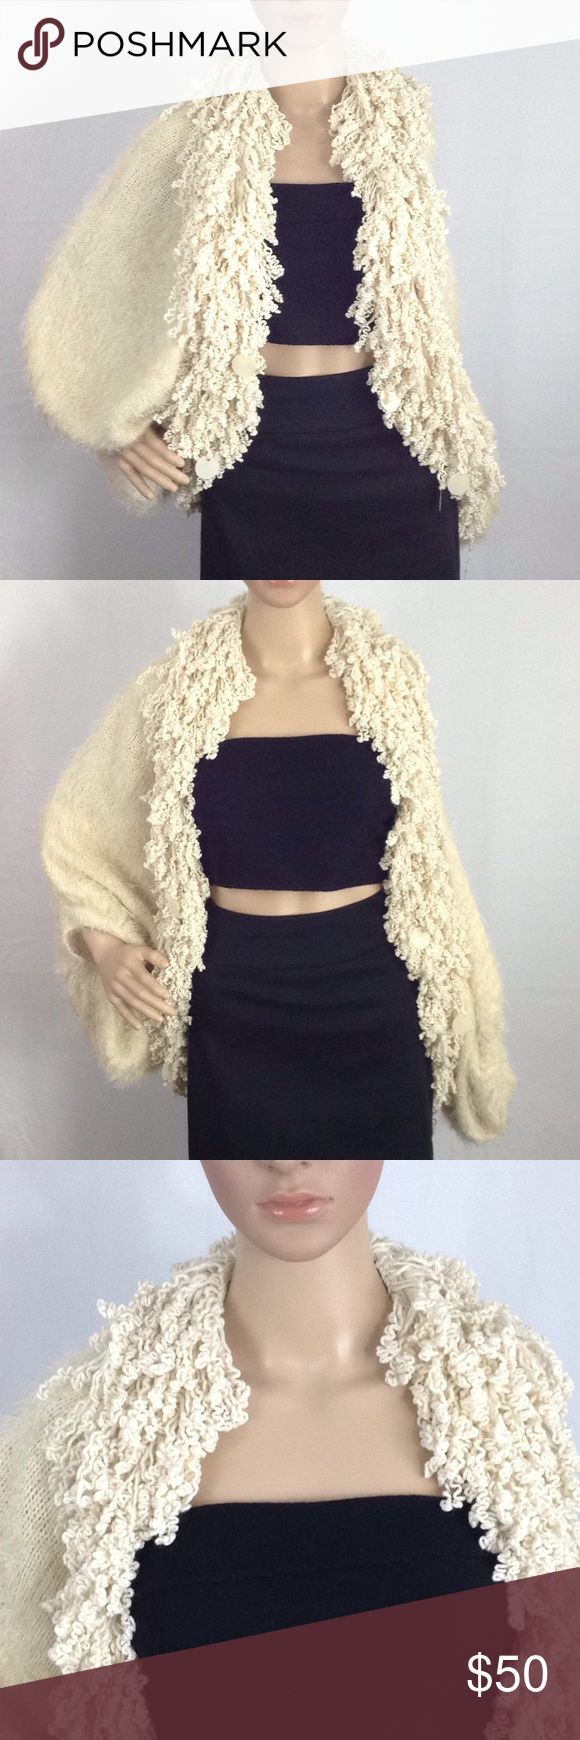 """""""Fuzzy Pop"""" Shrug Shawl Poncho M/L Fun & Cozy Open Shawl Cardigan w/ short peek a boo Sleeves in a M/L. ▫️Boutique Bought ▫️Ryu designer w/ tags attached ▫️Super fuzzy, cozy & chic ▫️100% Acrylic ▫️Dry Clean Only ▫️M/L ▫️Great condition ▫️No smoking Ryu : Sweaters Shrugs & Ponchos"""